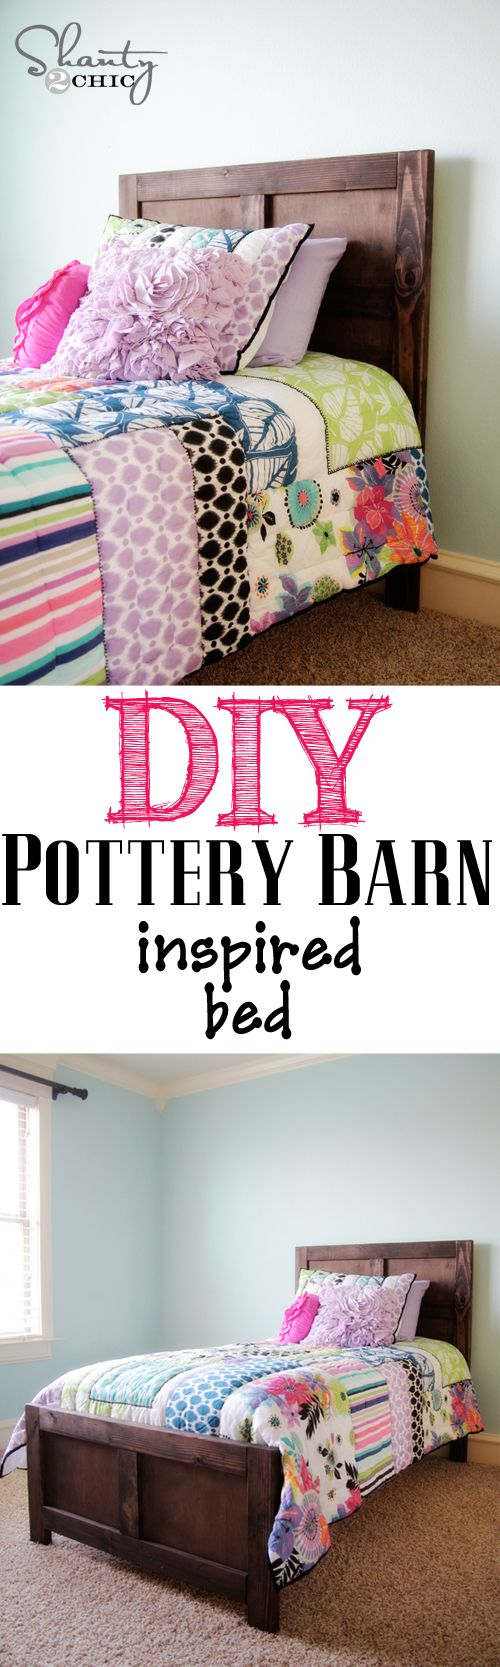 DIY Bed - Pottery Barn Inspired | Cerámica, Tutoriales y Colchas